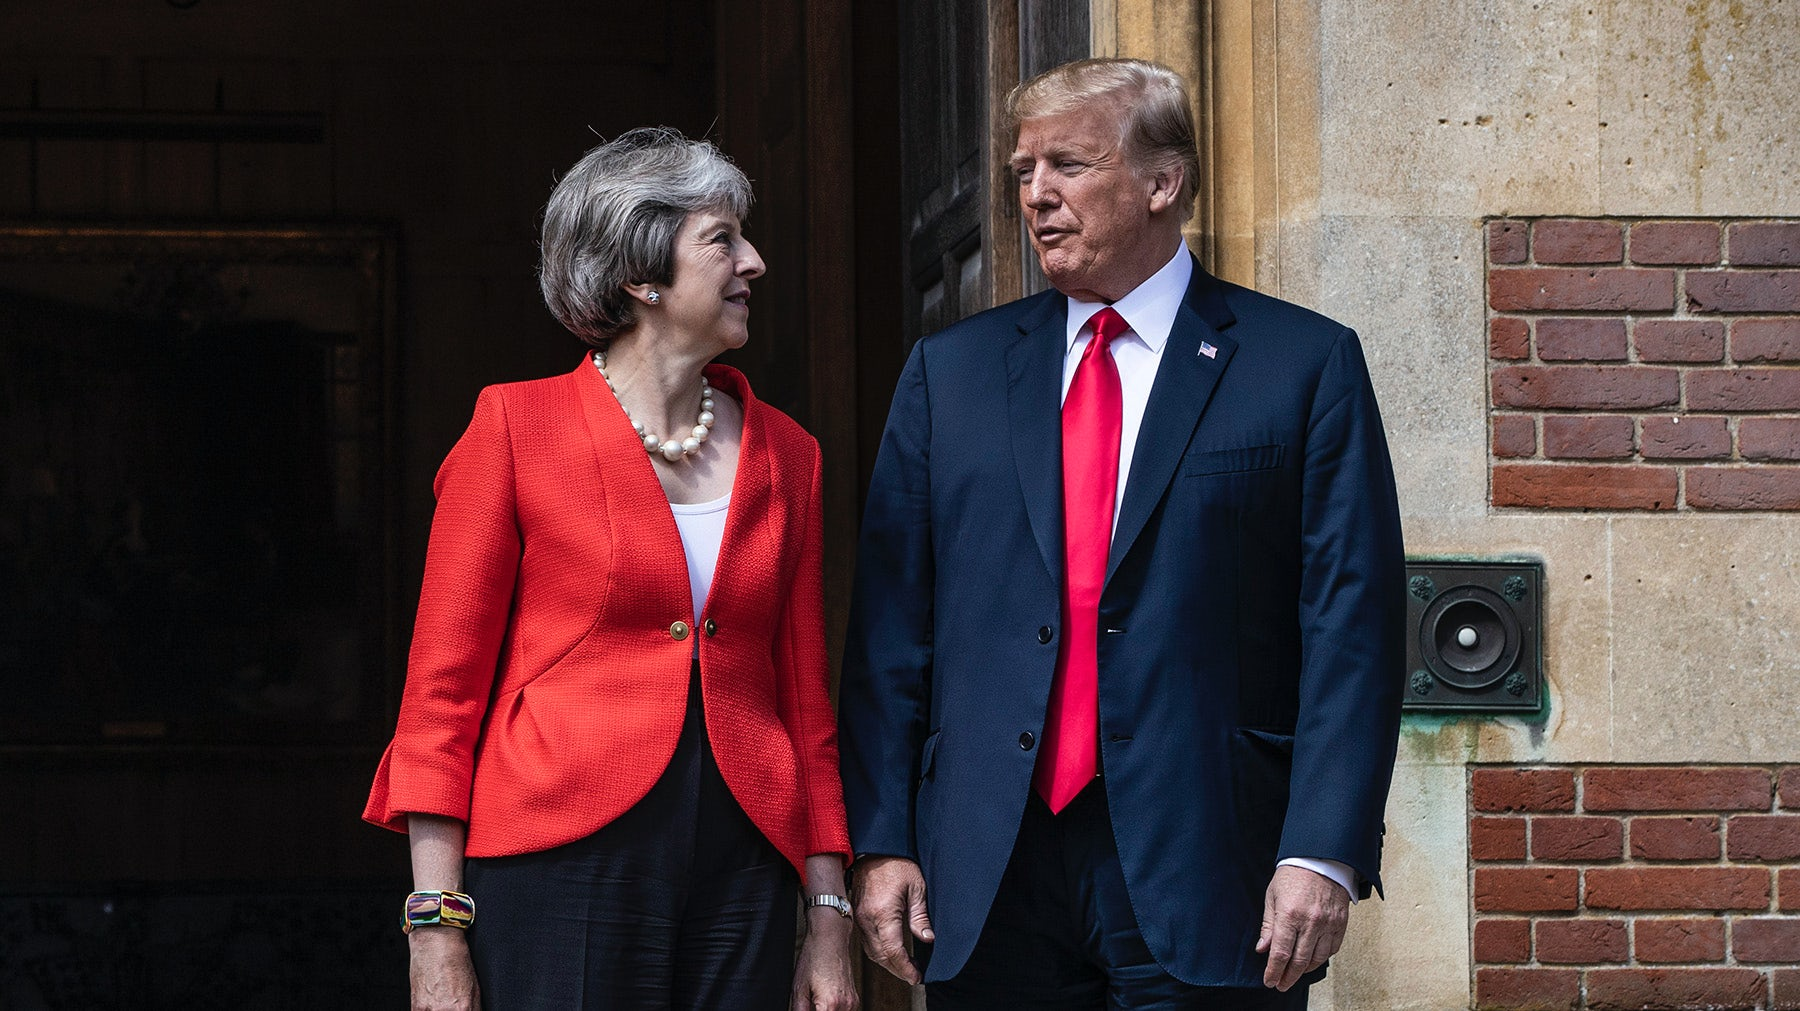 British prime minister Theresa May and US president Donald Trump | Source: Getty